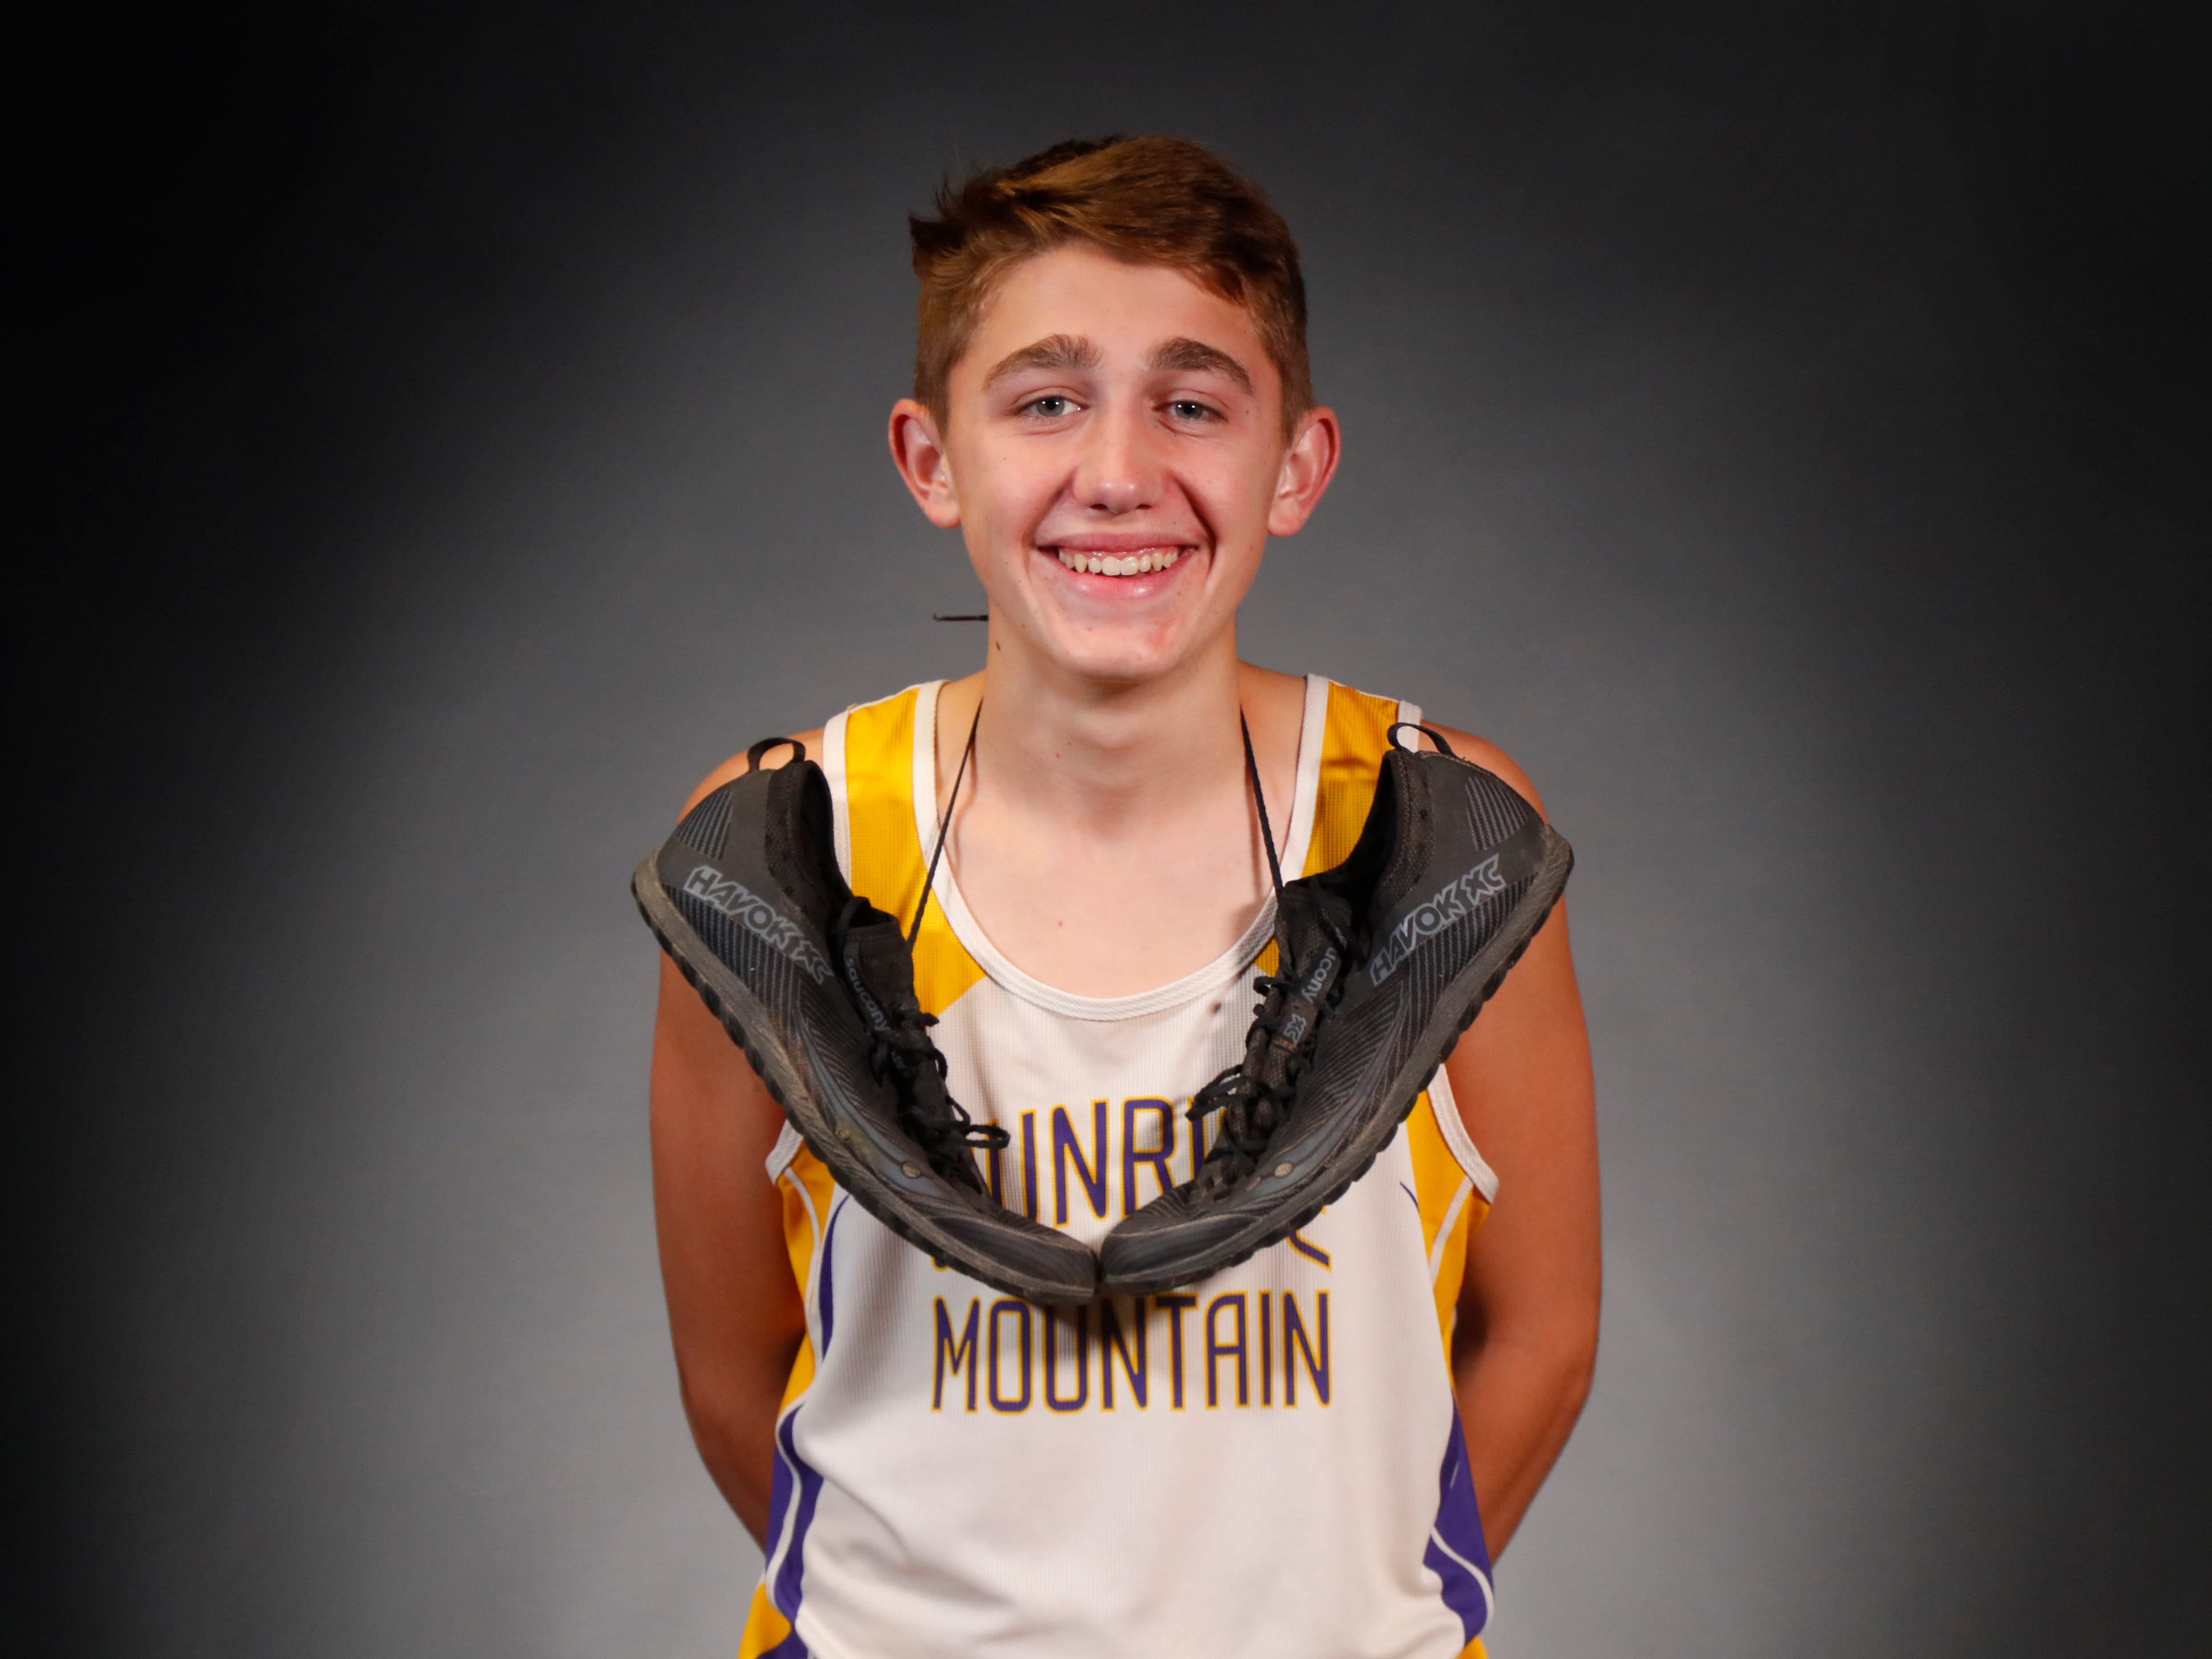 Braedon Palmer from Peoria Sunrise Mountain is a nominee for azcentral Sports Awards High School Boys Cross Country Runner of the Year. #azcsportsawards